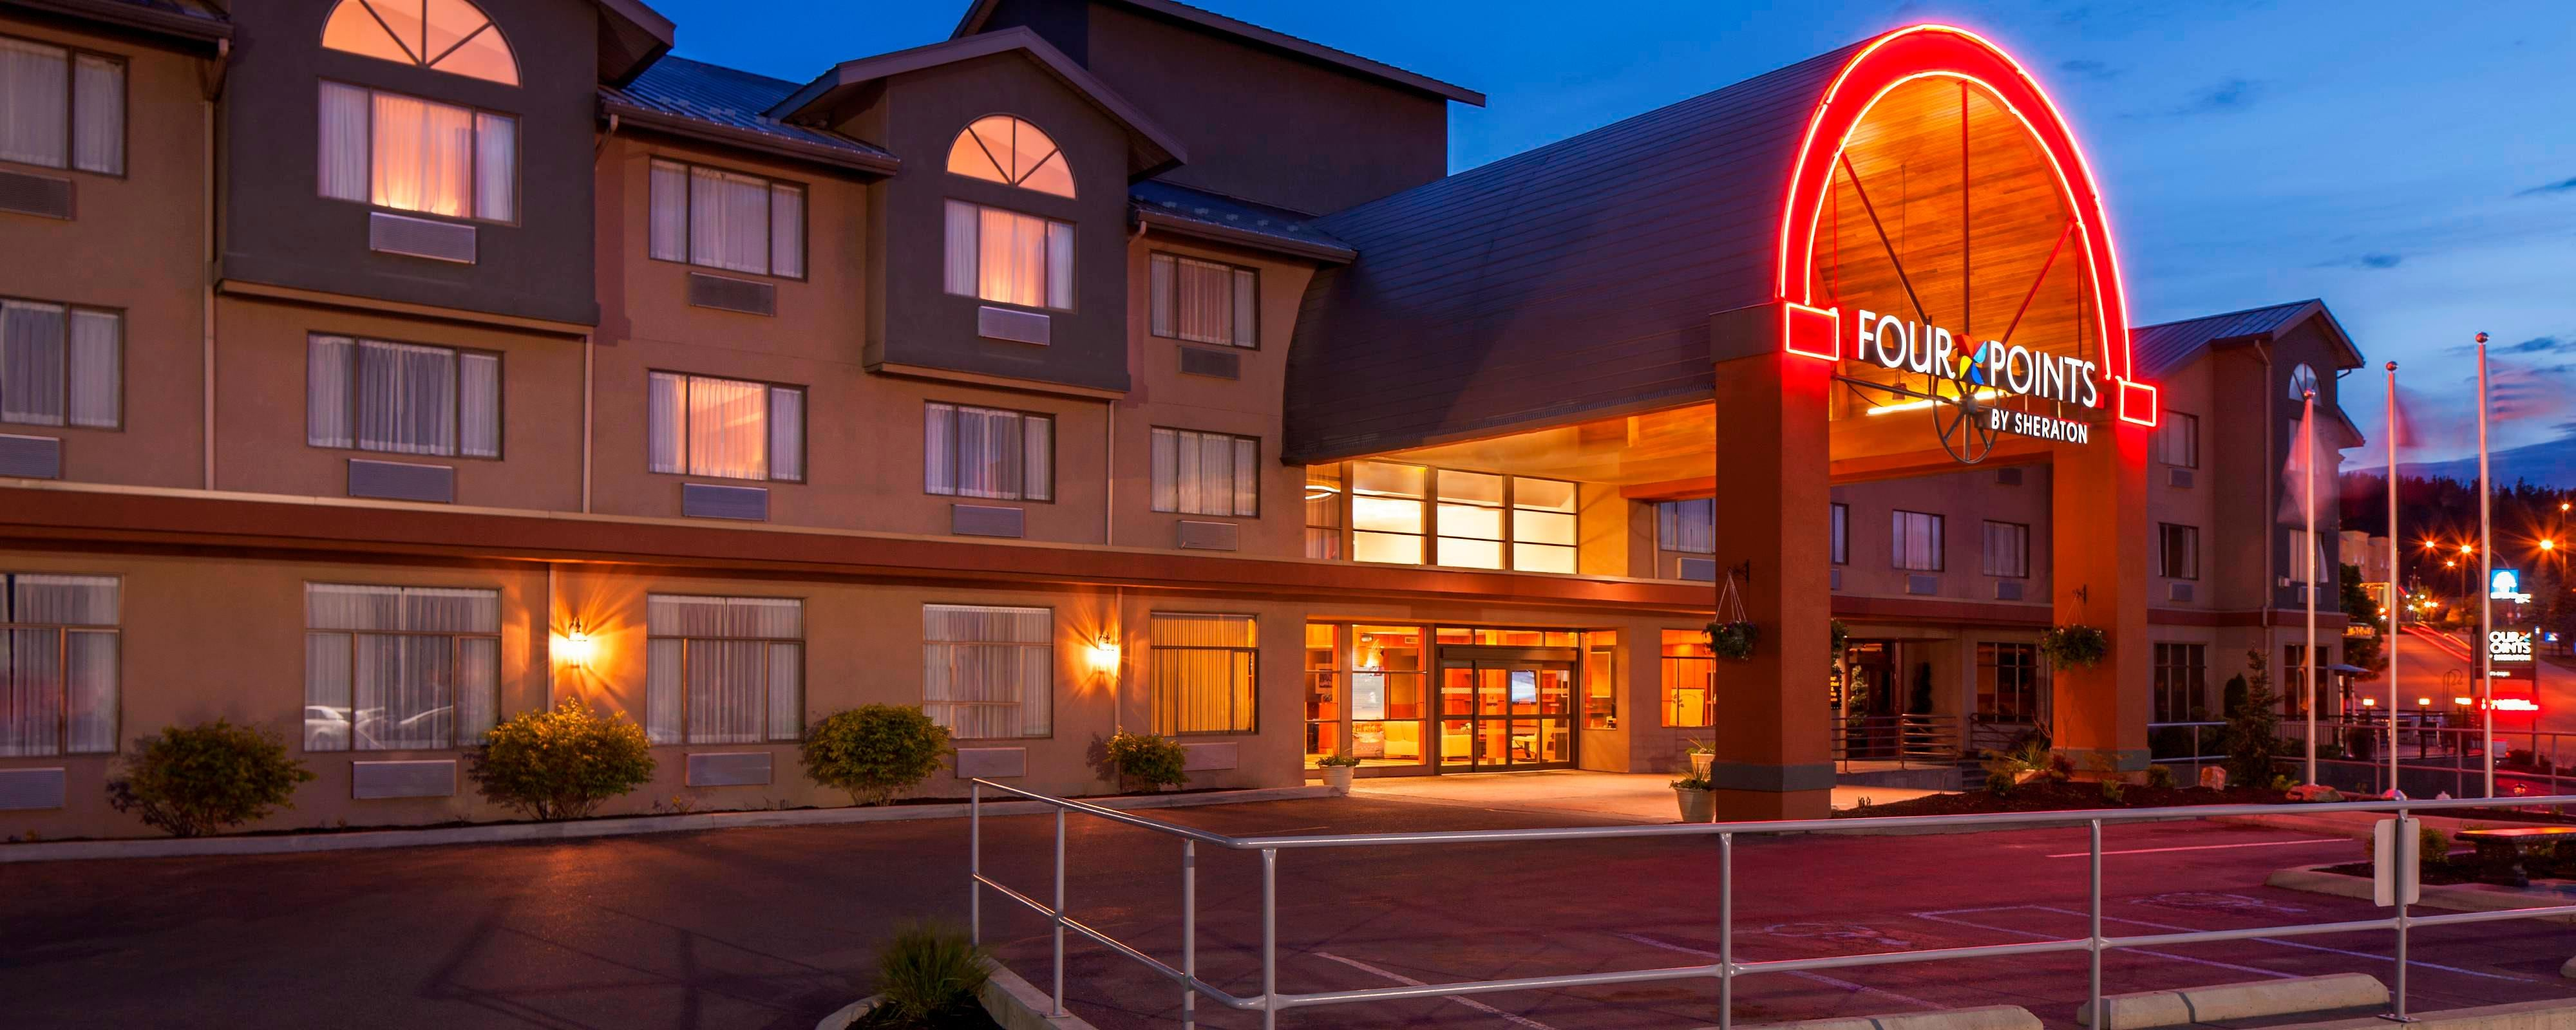 Kamloops Hotel | Four Points by Sheraton Kamloops